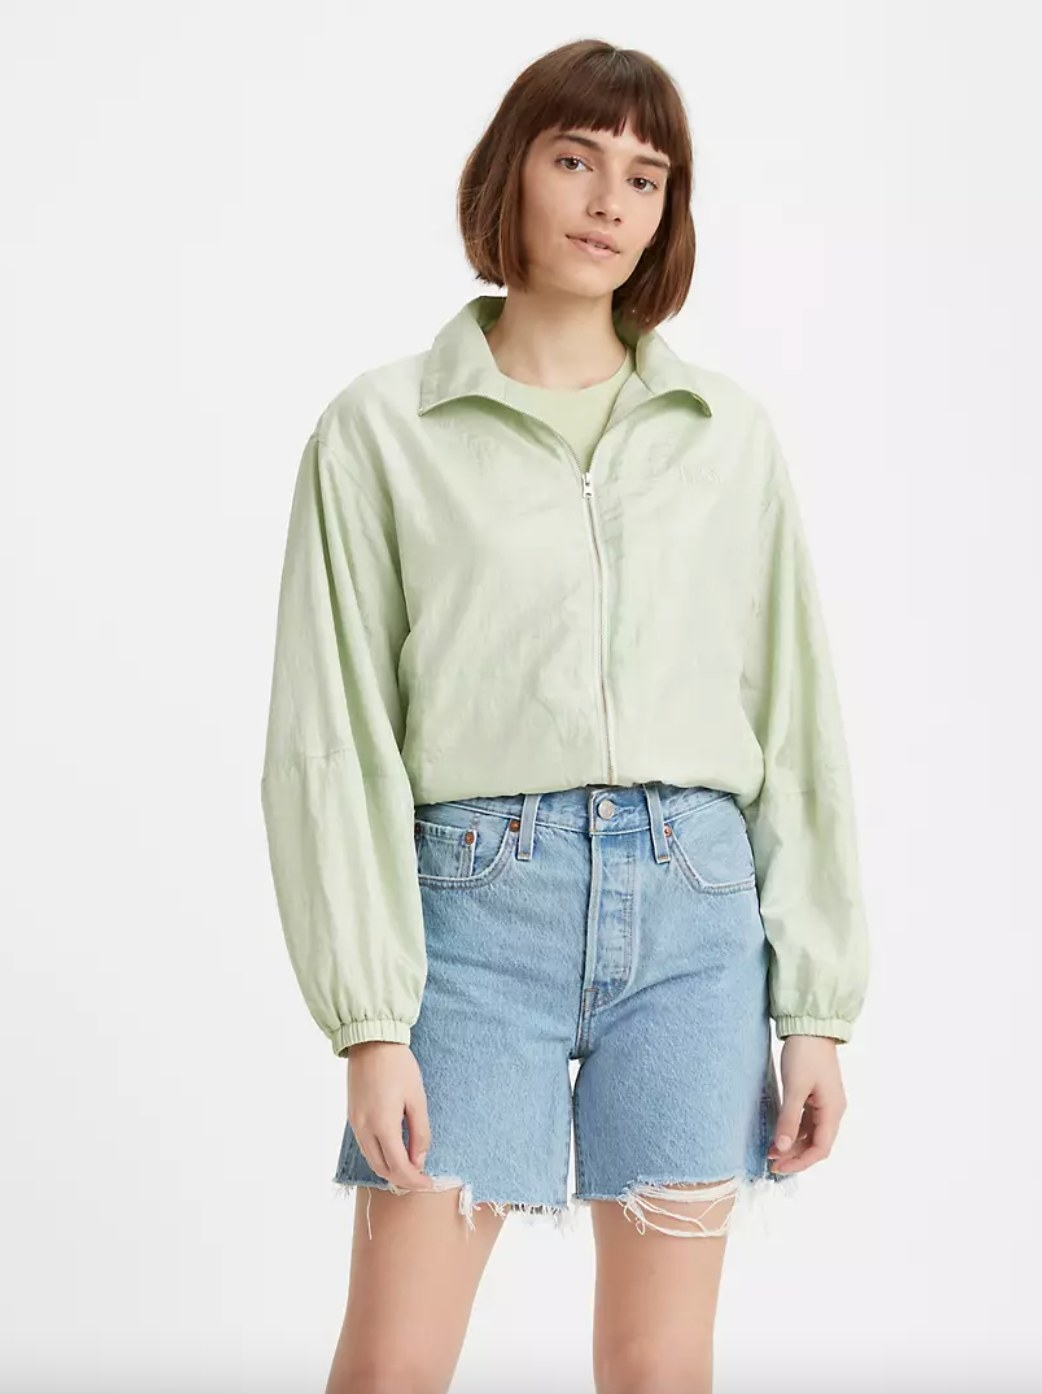 Model in the cropped light green windbreaker